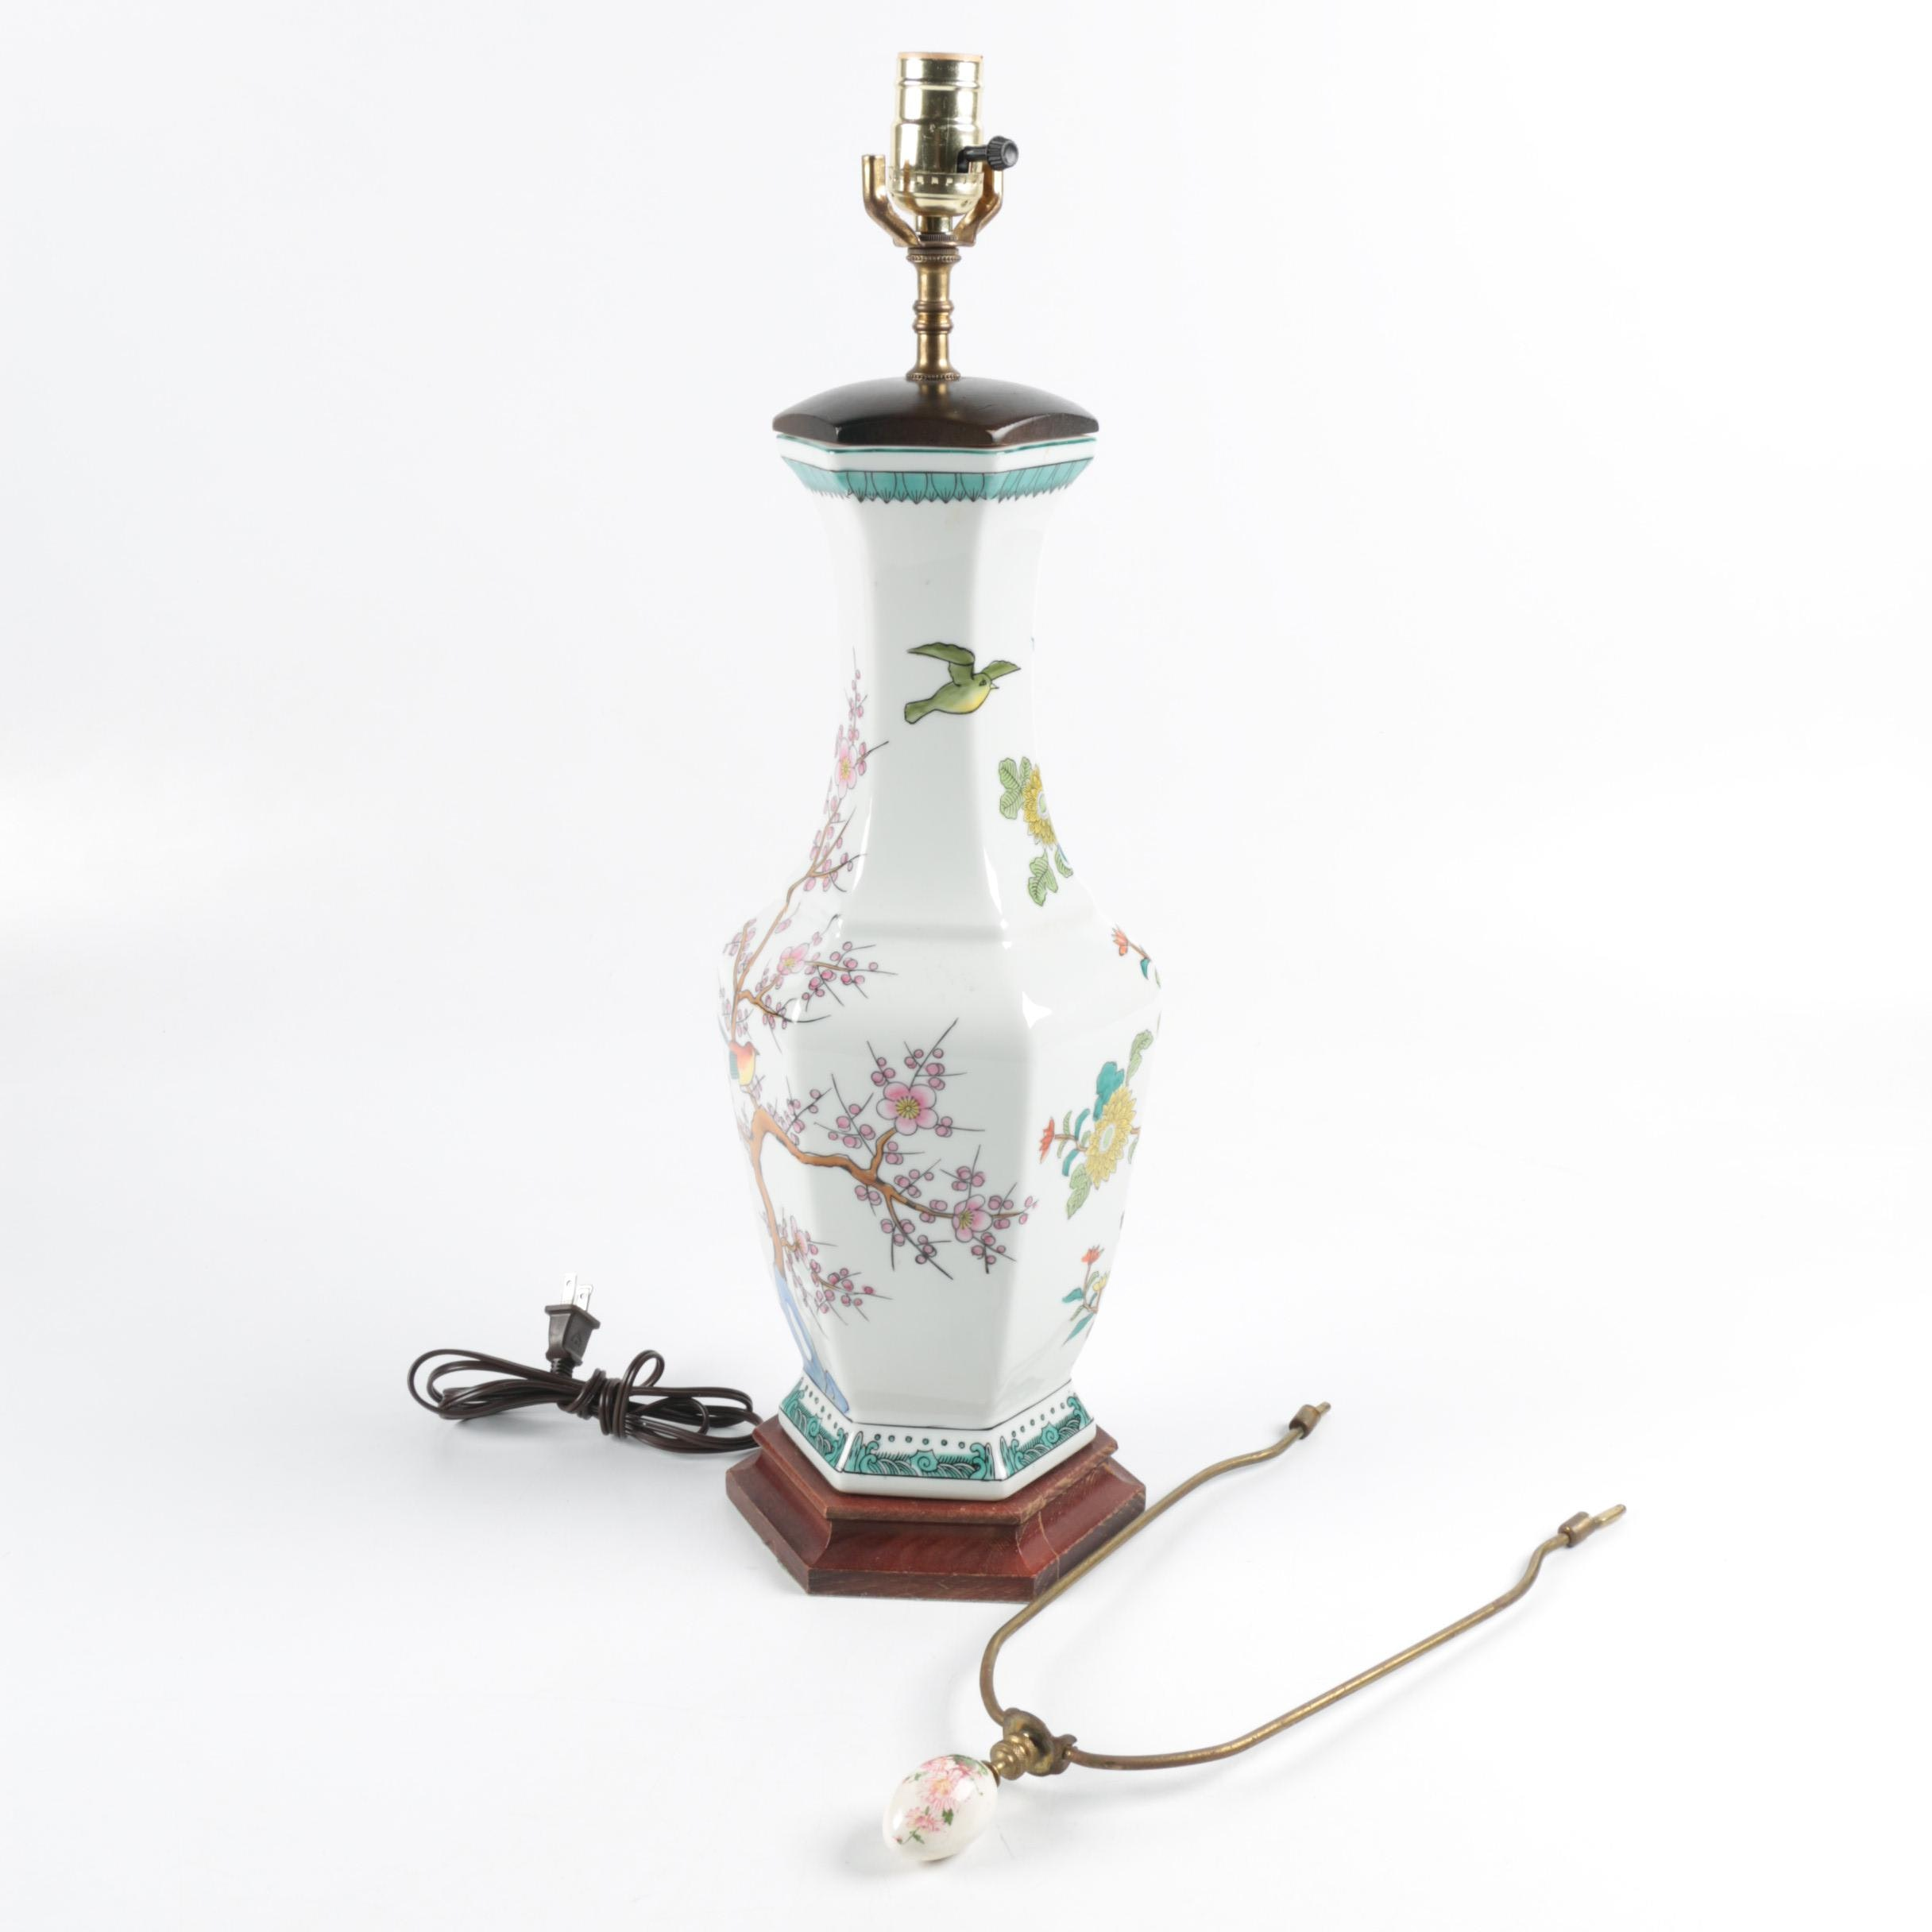 Asian Inspired Urn Shaped Ceramic Table Lamp